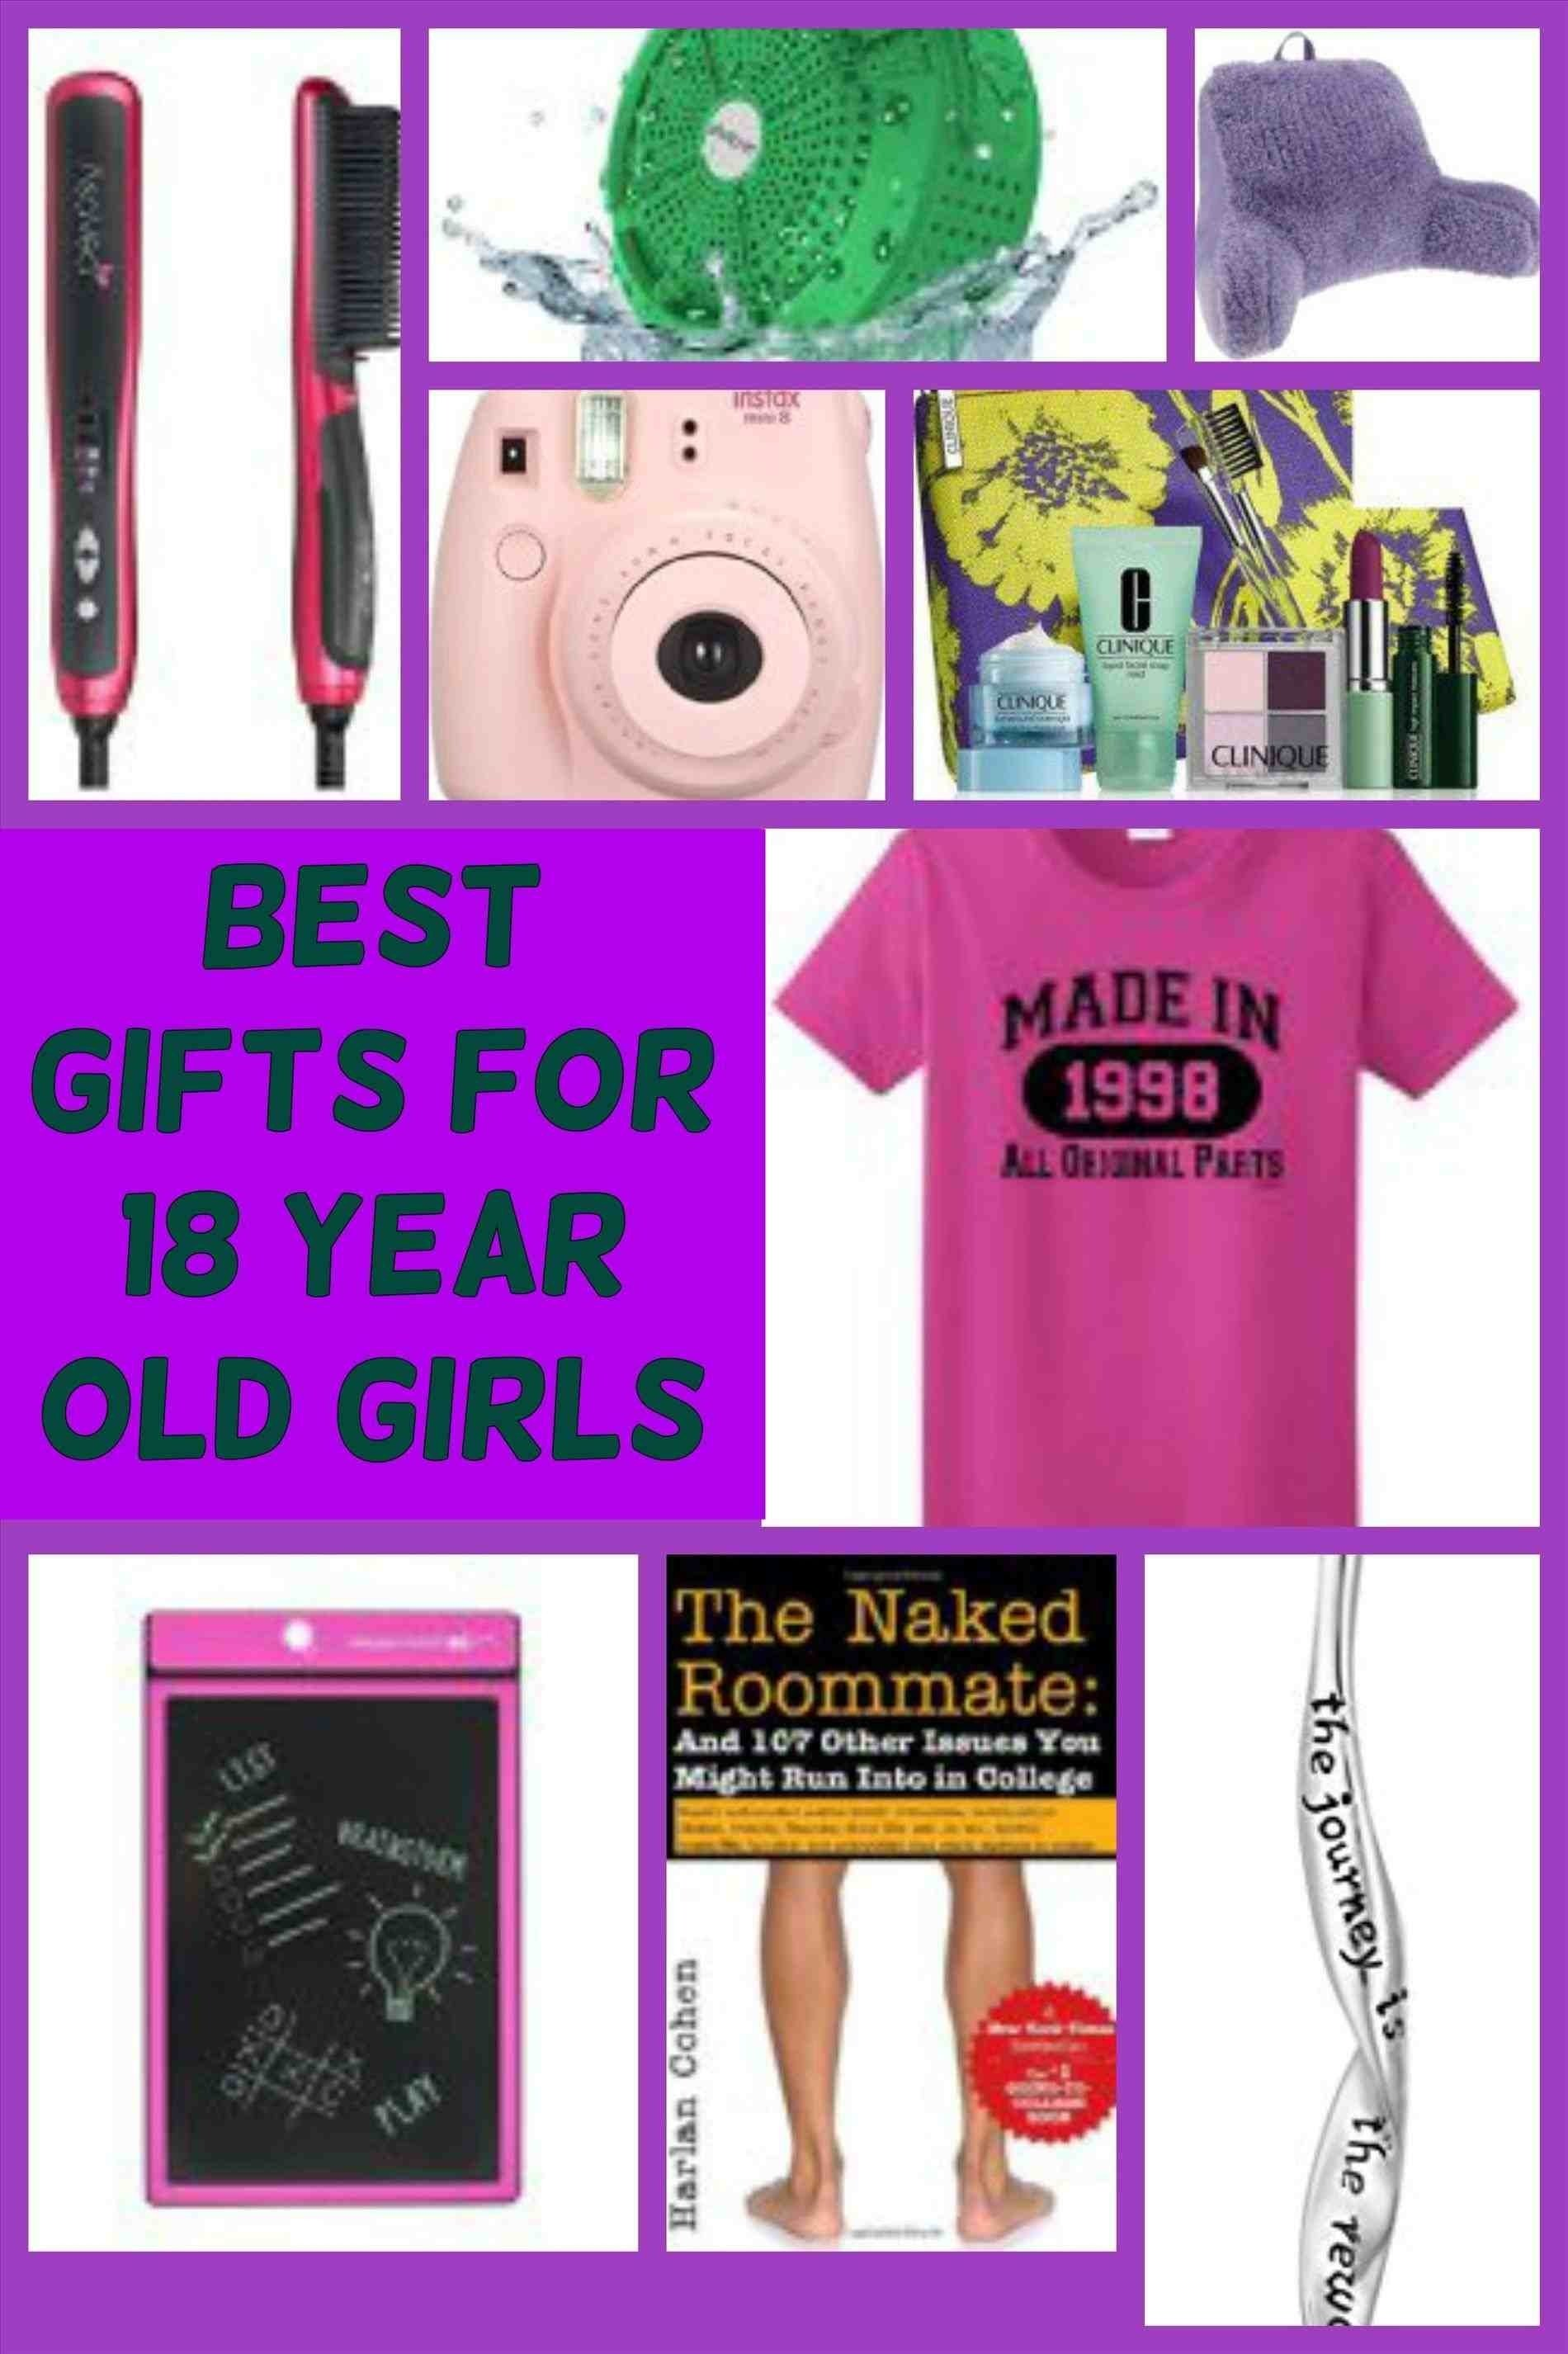 10 Great Gift Ideas For Older Women best gift ideas for older women christmas s year old boys itus 2021